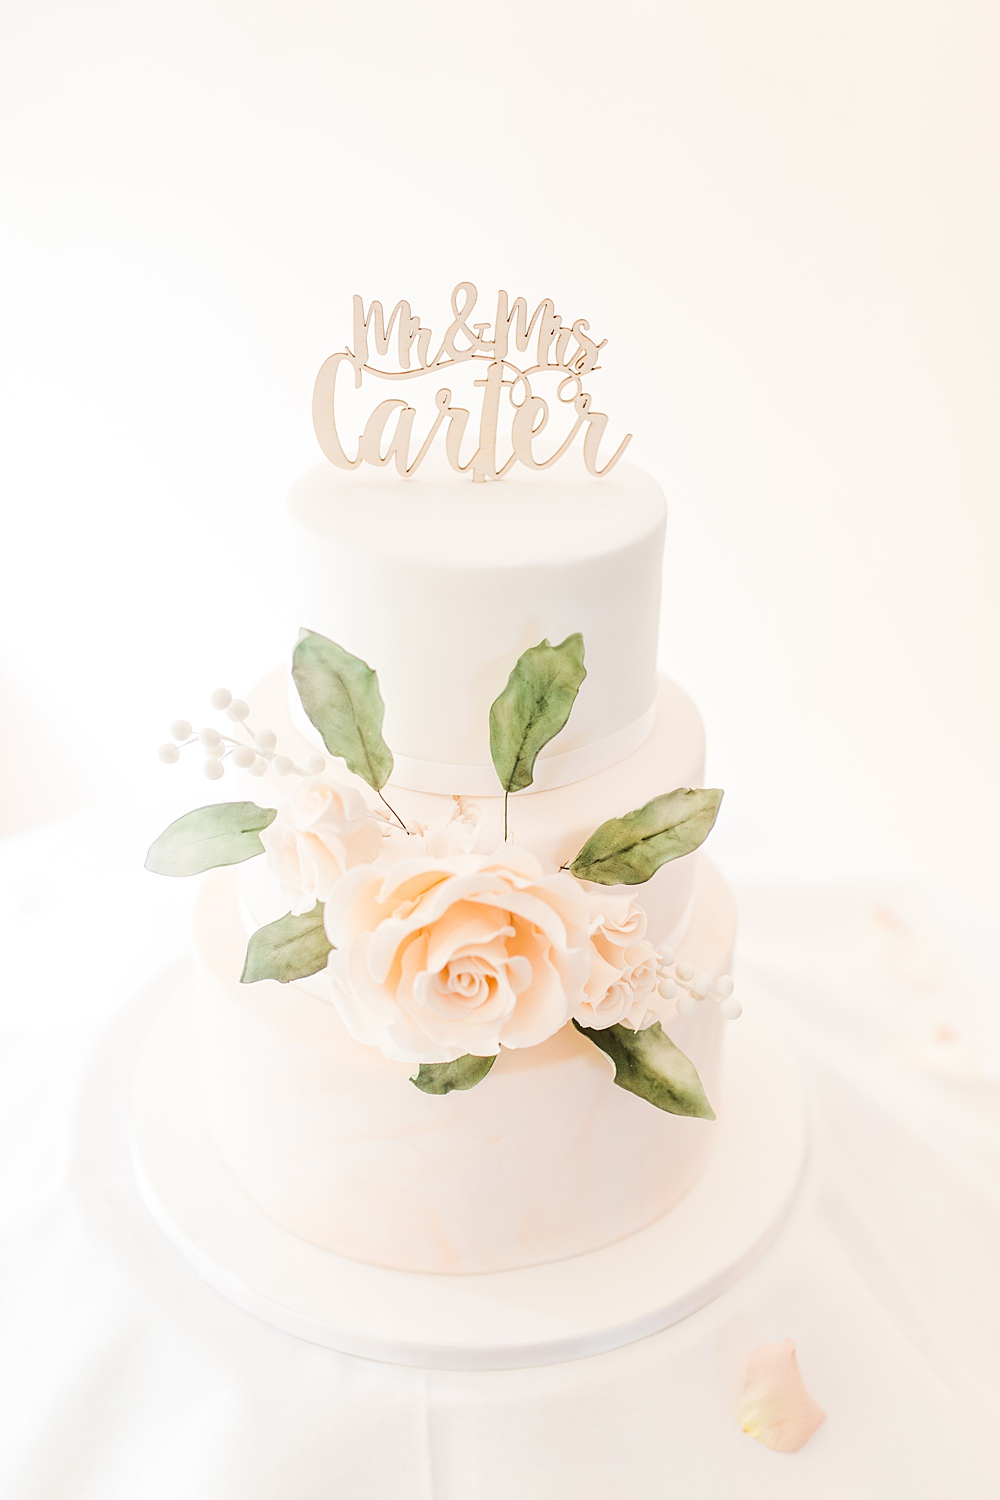 White Cake Blush Flowers Rose Laser Cut Topper Sheene Mill Wedding Terri & Lori Photography and Film Studio